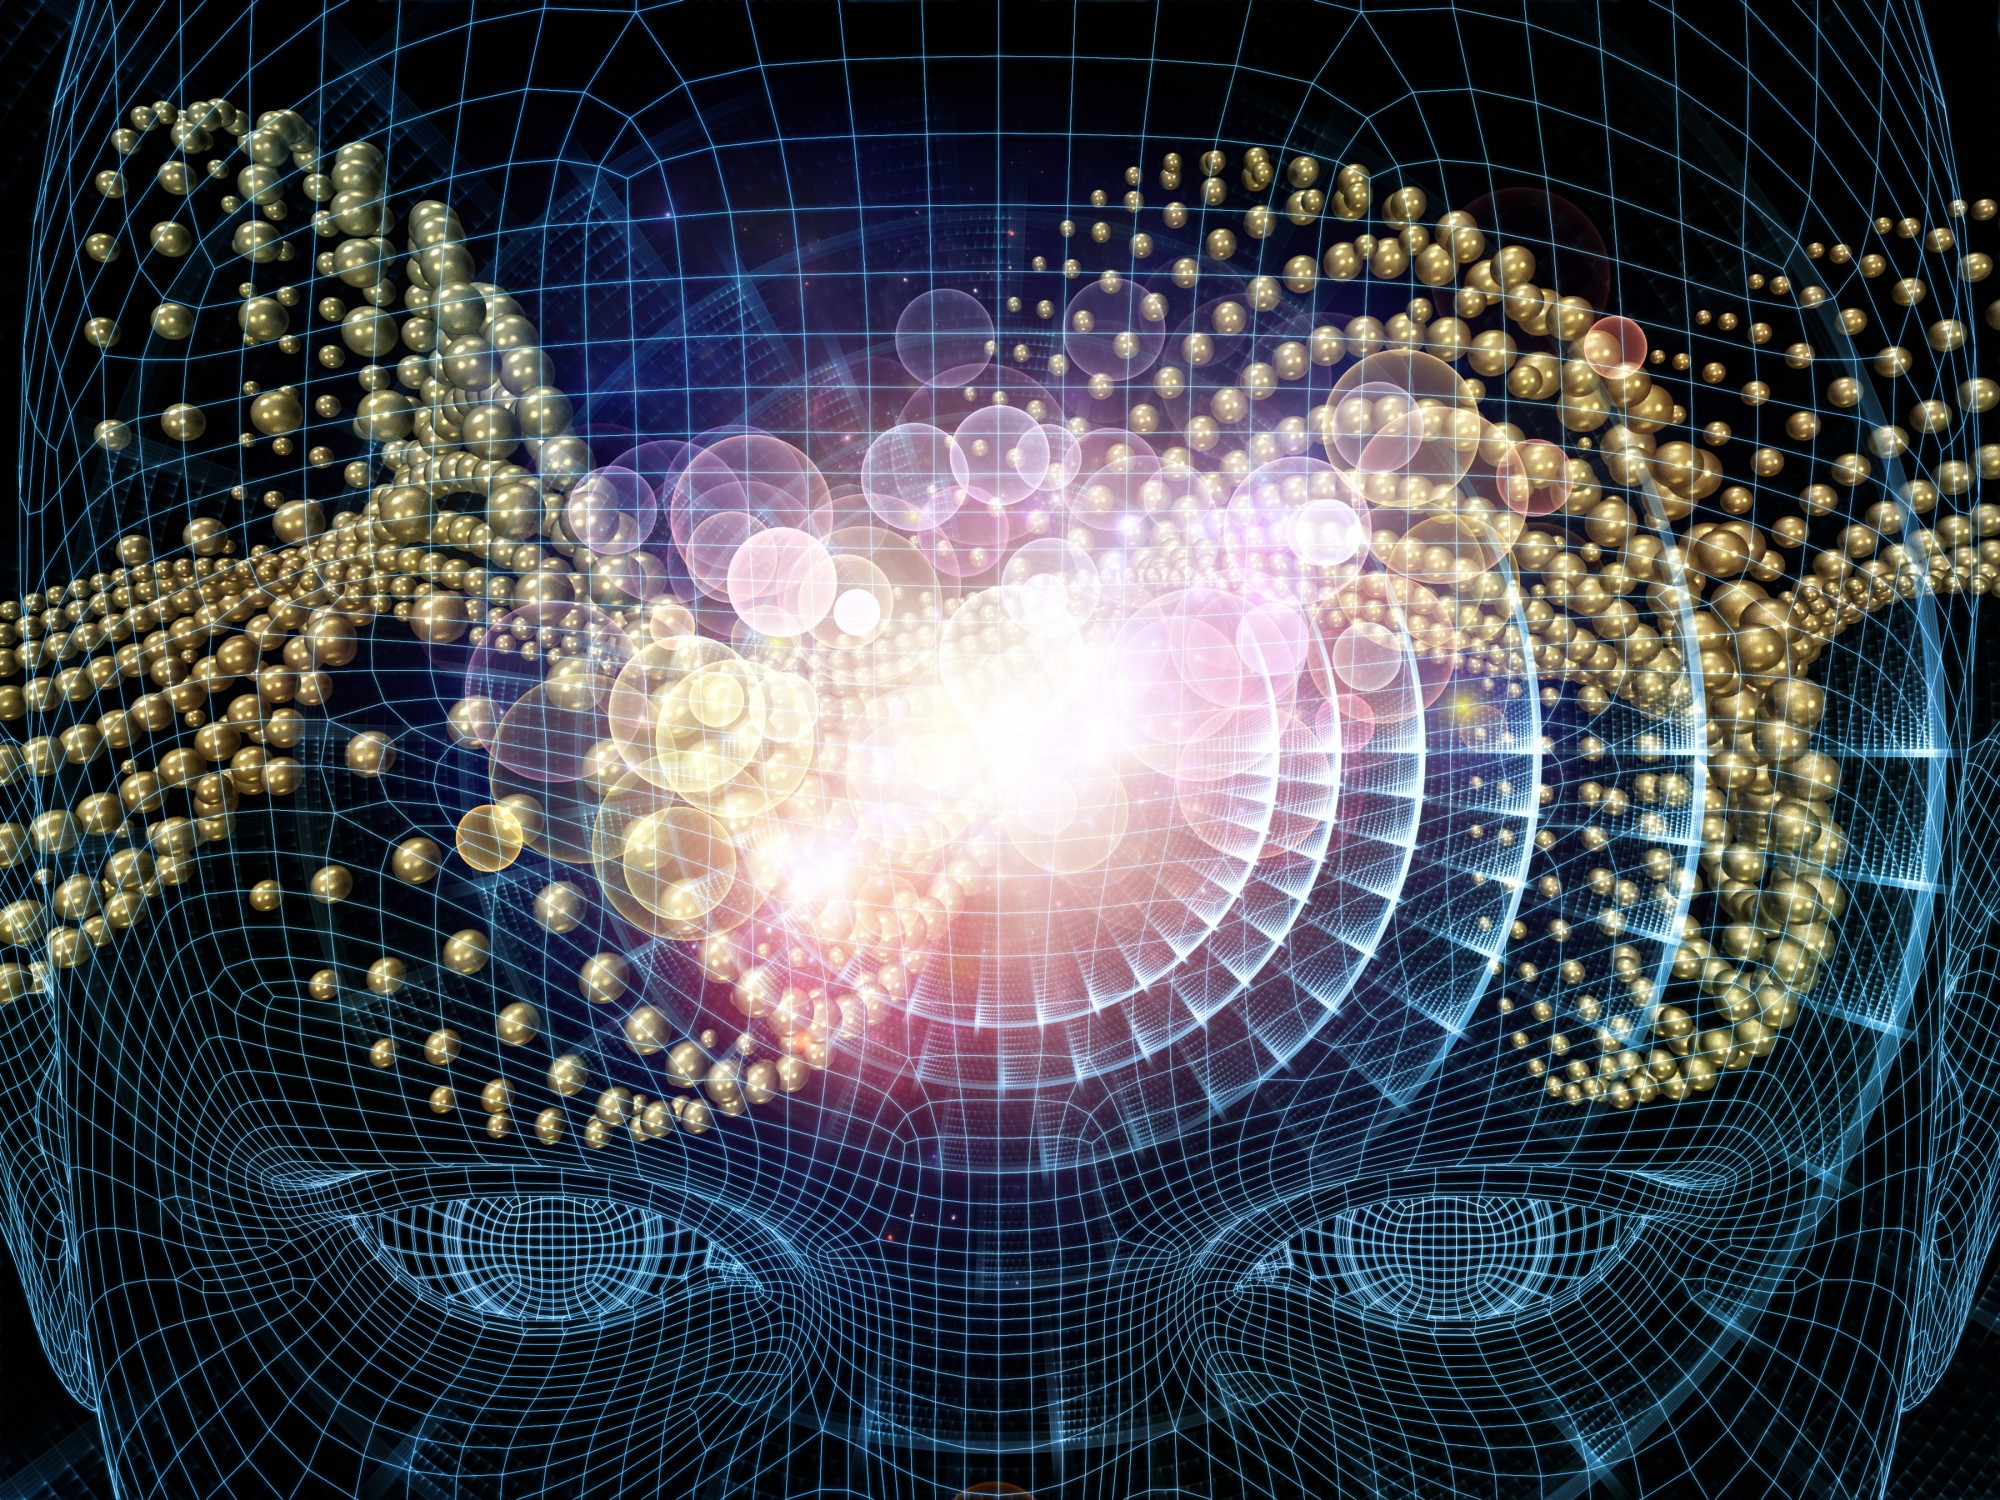 Abstract image of consciousness permeating the universe